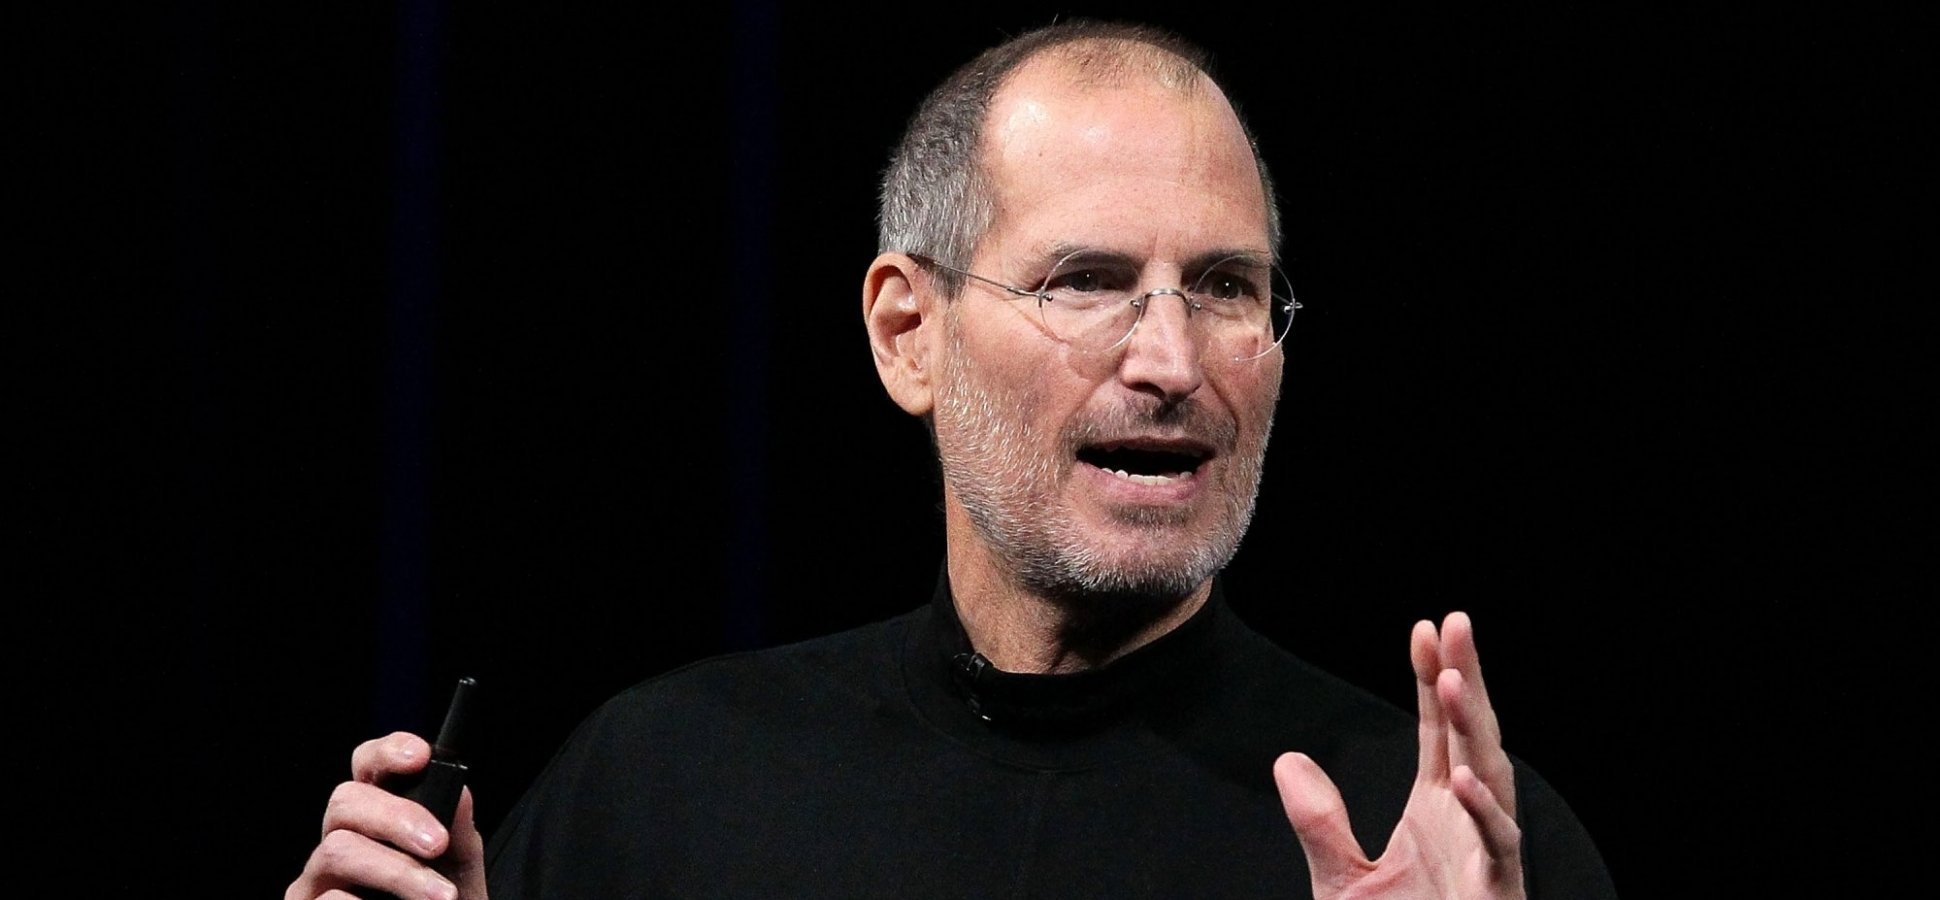 Steve Jobs Did This 1 Weird Thing to Come Up With Big Ideas (and You Can Too)